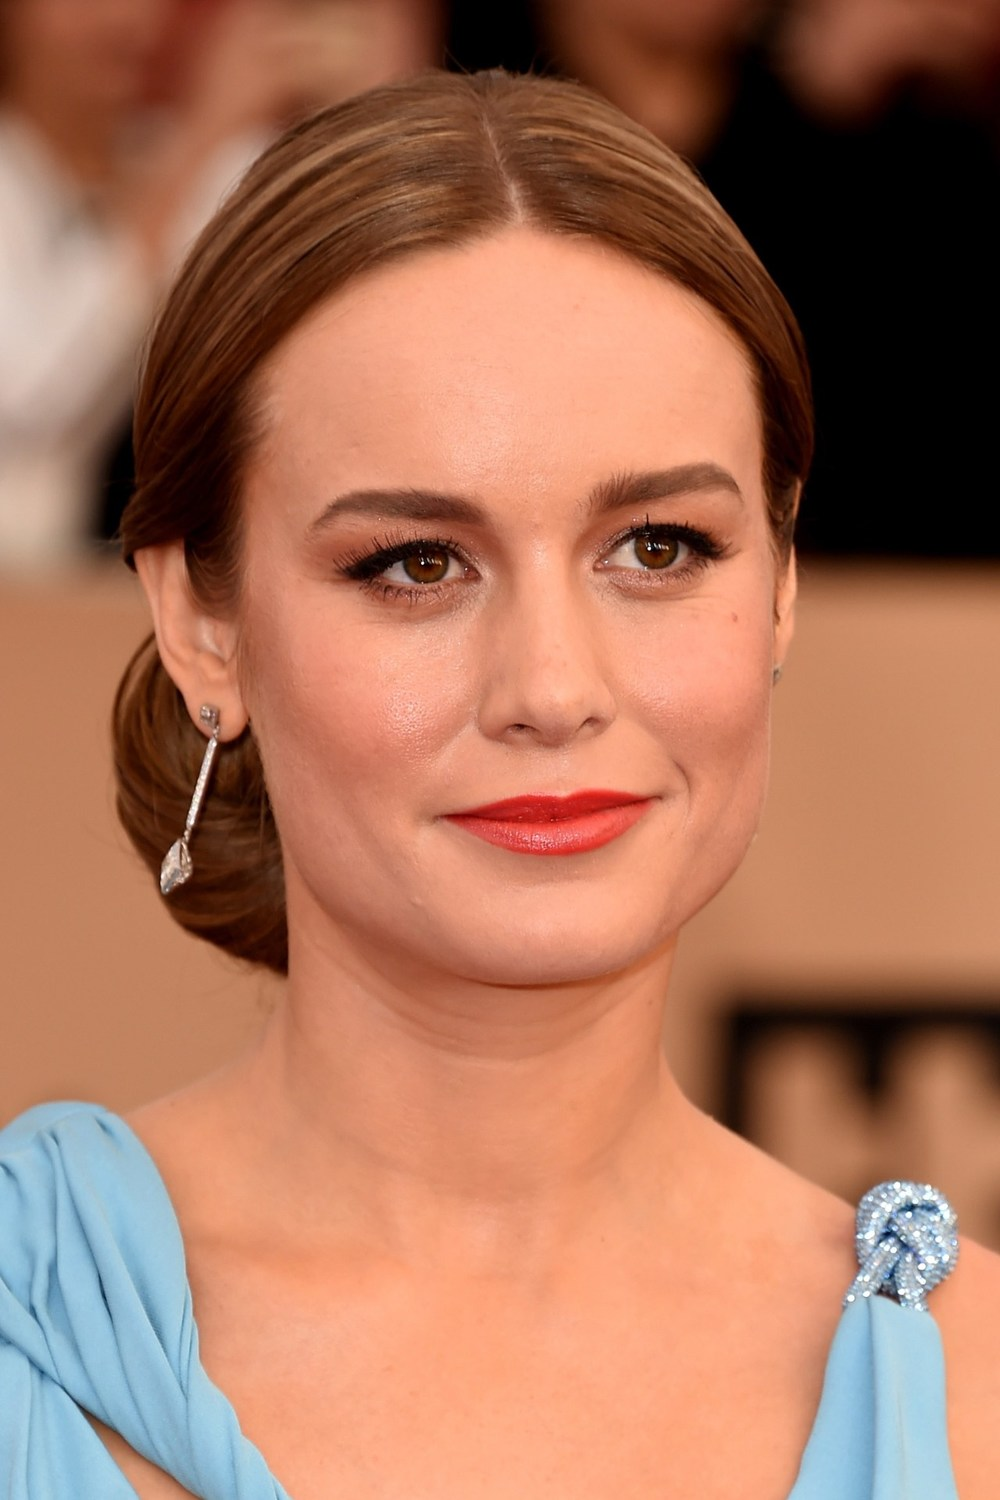 Brie Larson, who won the award for Outstanding Performance by a Female Actor in a Leading Role for Room, showed off flawless red-carpet elegance with a bold tomato lip, perfectly defined eyes and the very sleekest of chignons.